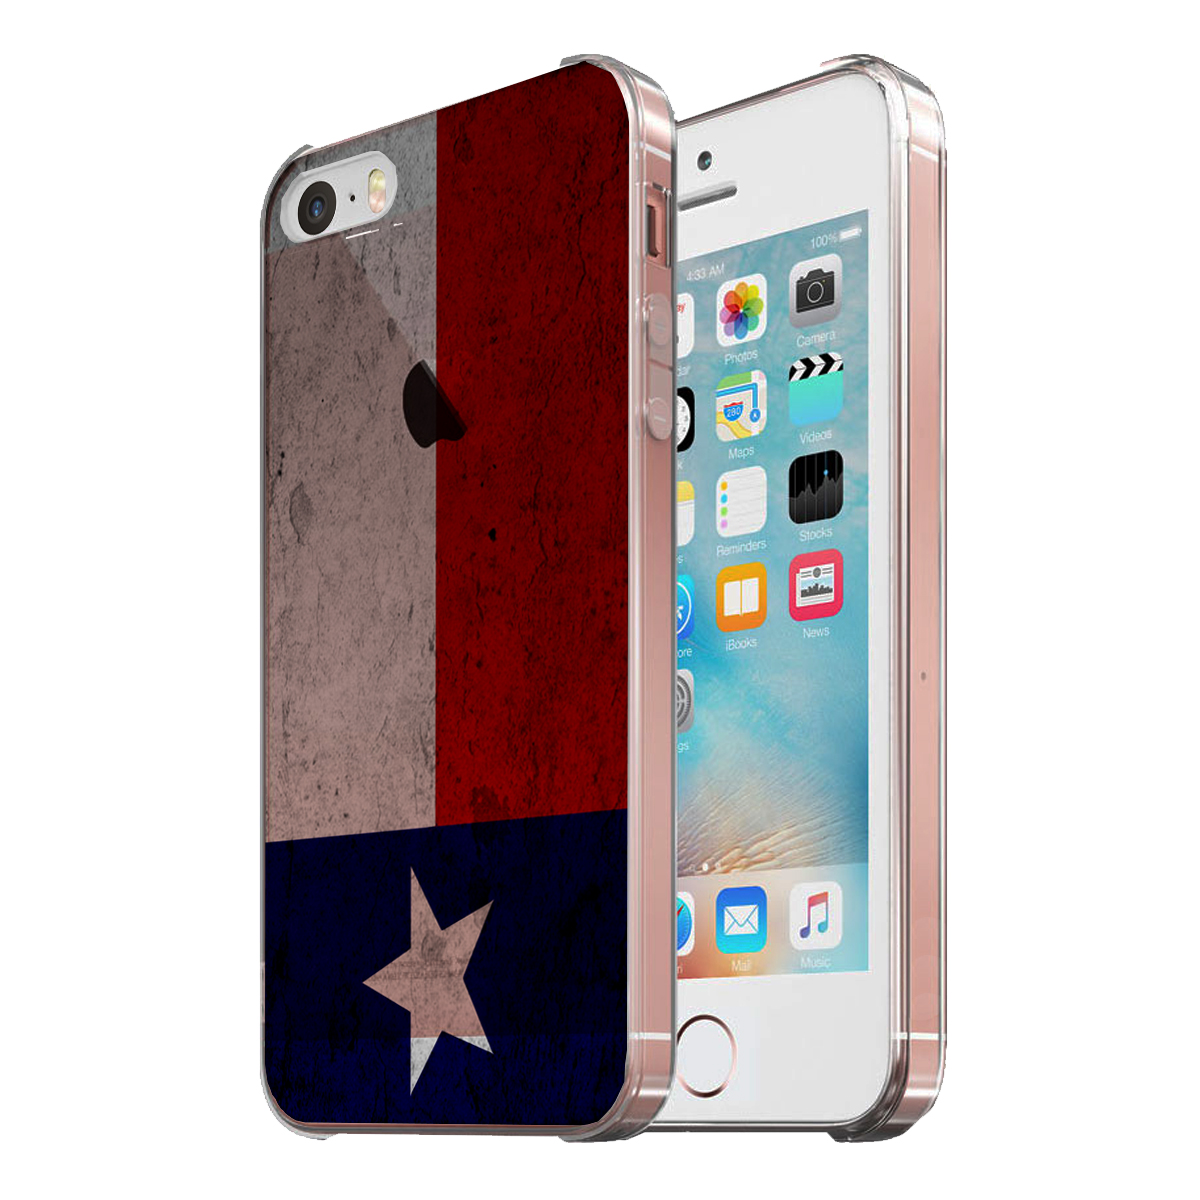 KuzmarK Clear Cover Case fits iPhone SE & iPhone 5 - Texas Flag Concrete Wall